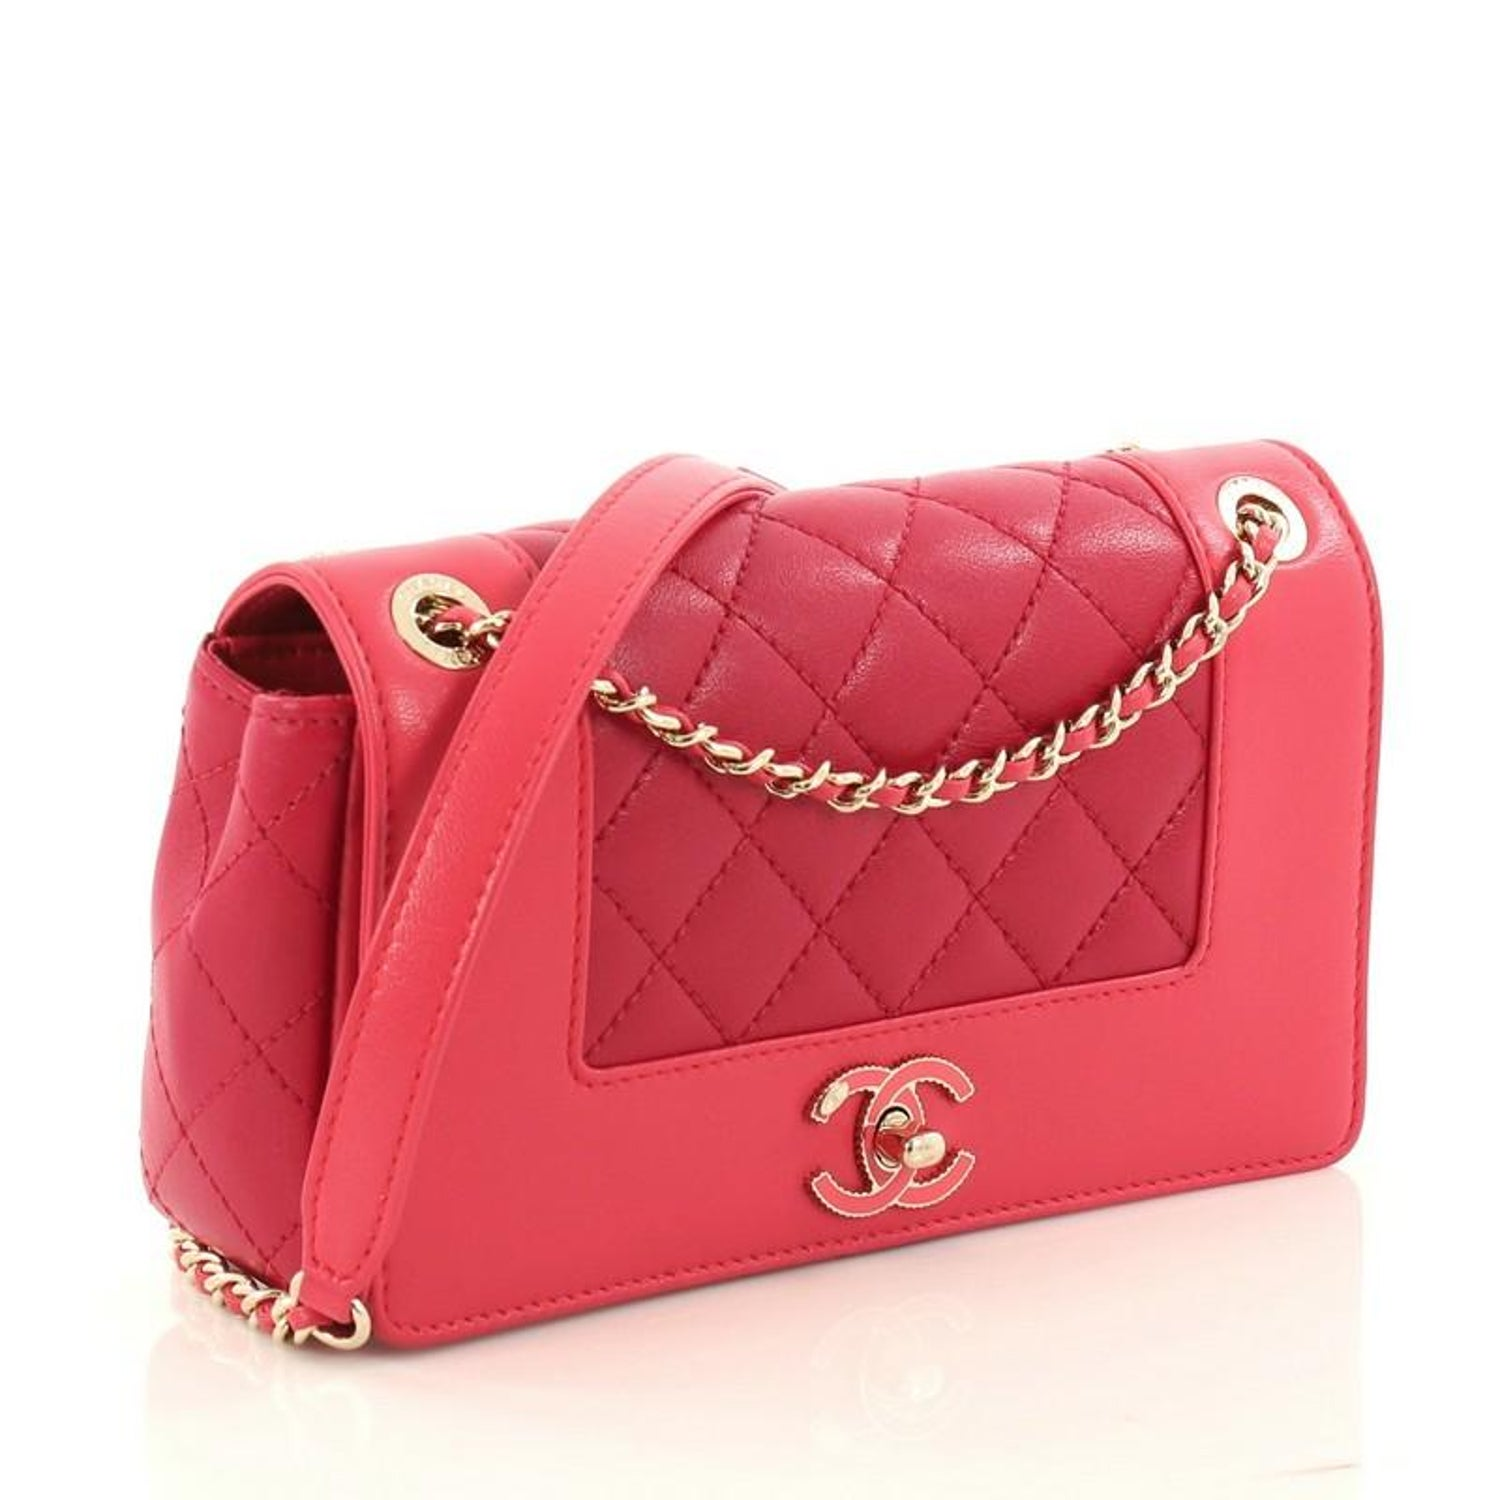 e9346ba193a0 Chanel Mademoiselle Vintage Flap Bag Quilted Sheepskin Small at 1stdibs